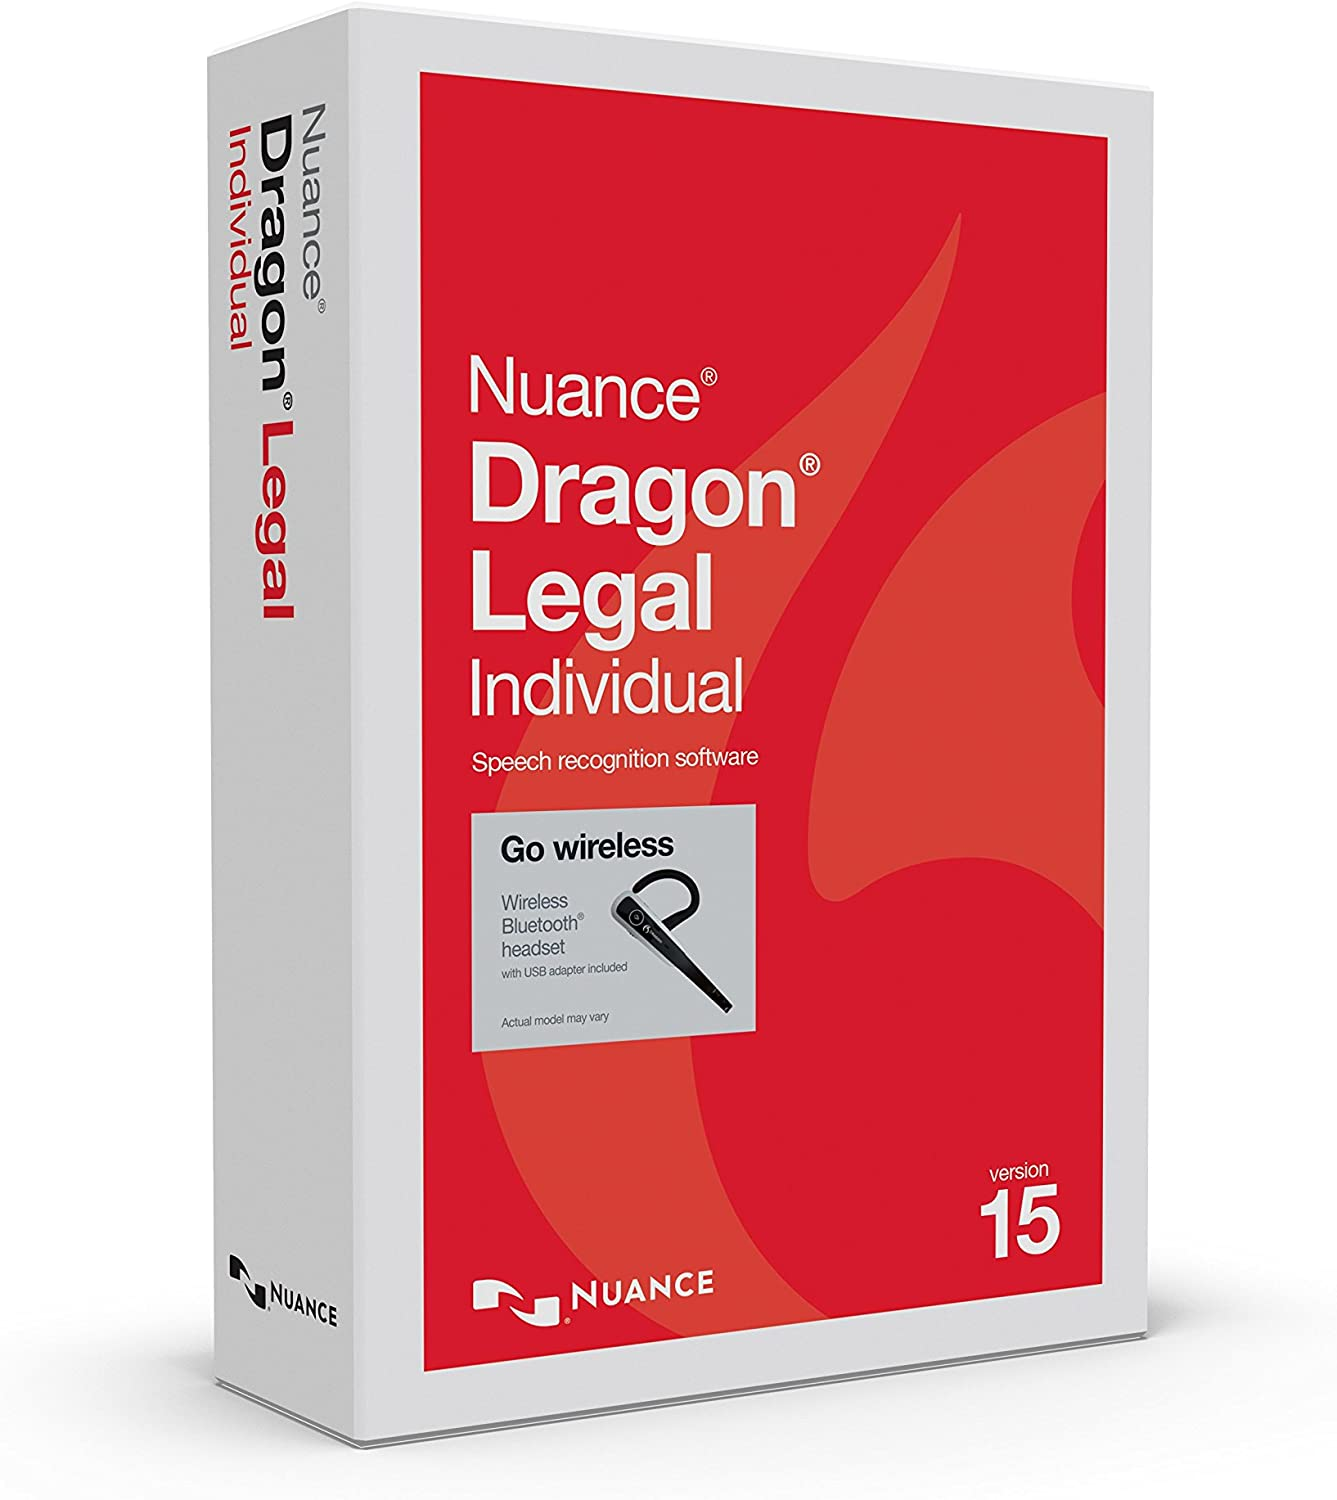 Dragon Legal Individual 15, Dictate Documents and Control your PC – all by Voice, [PC Disc] with Bluetooth Headset